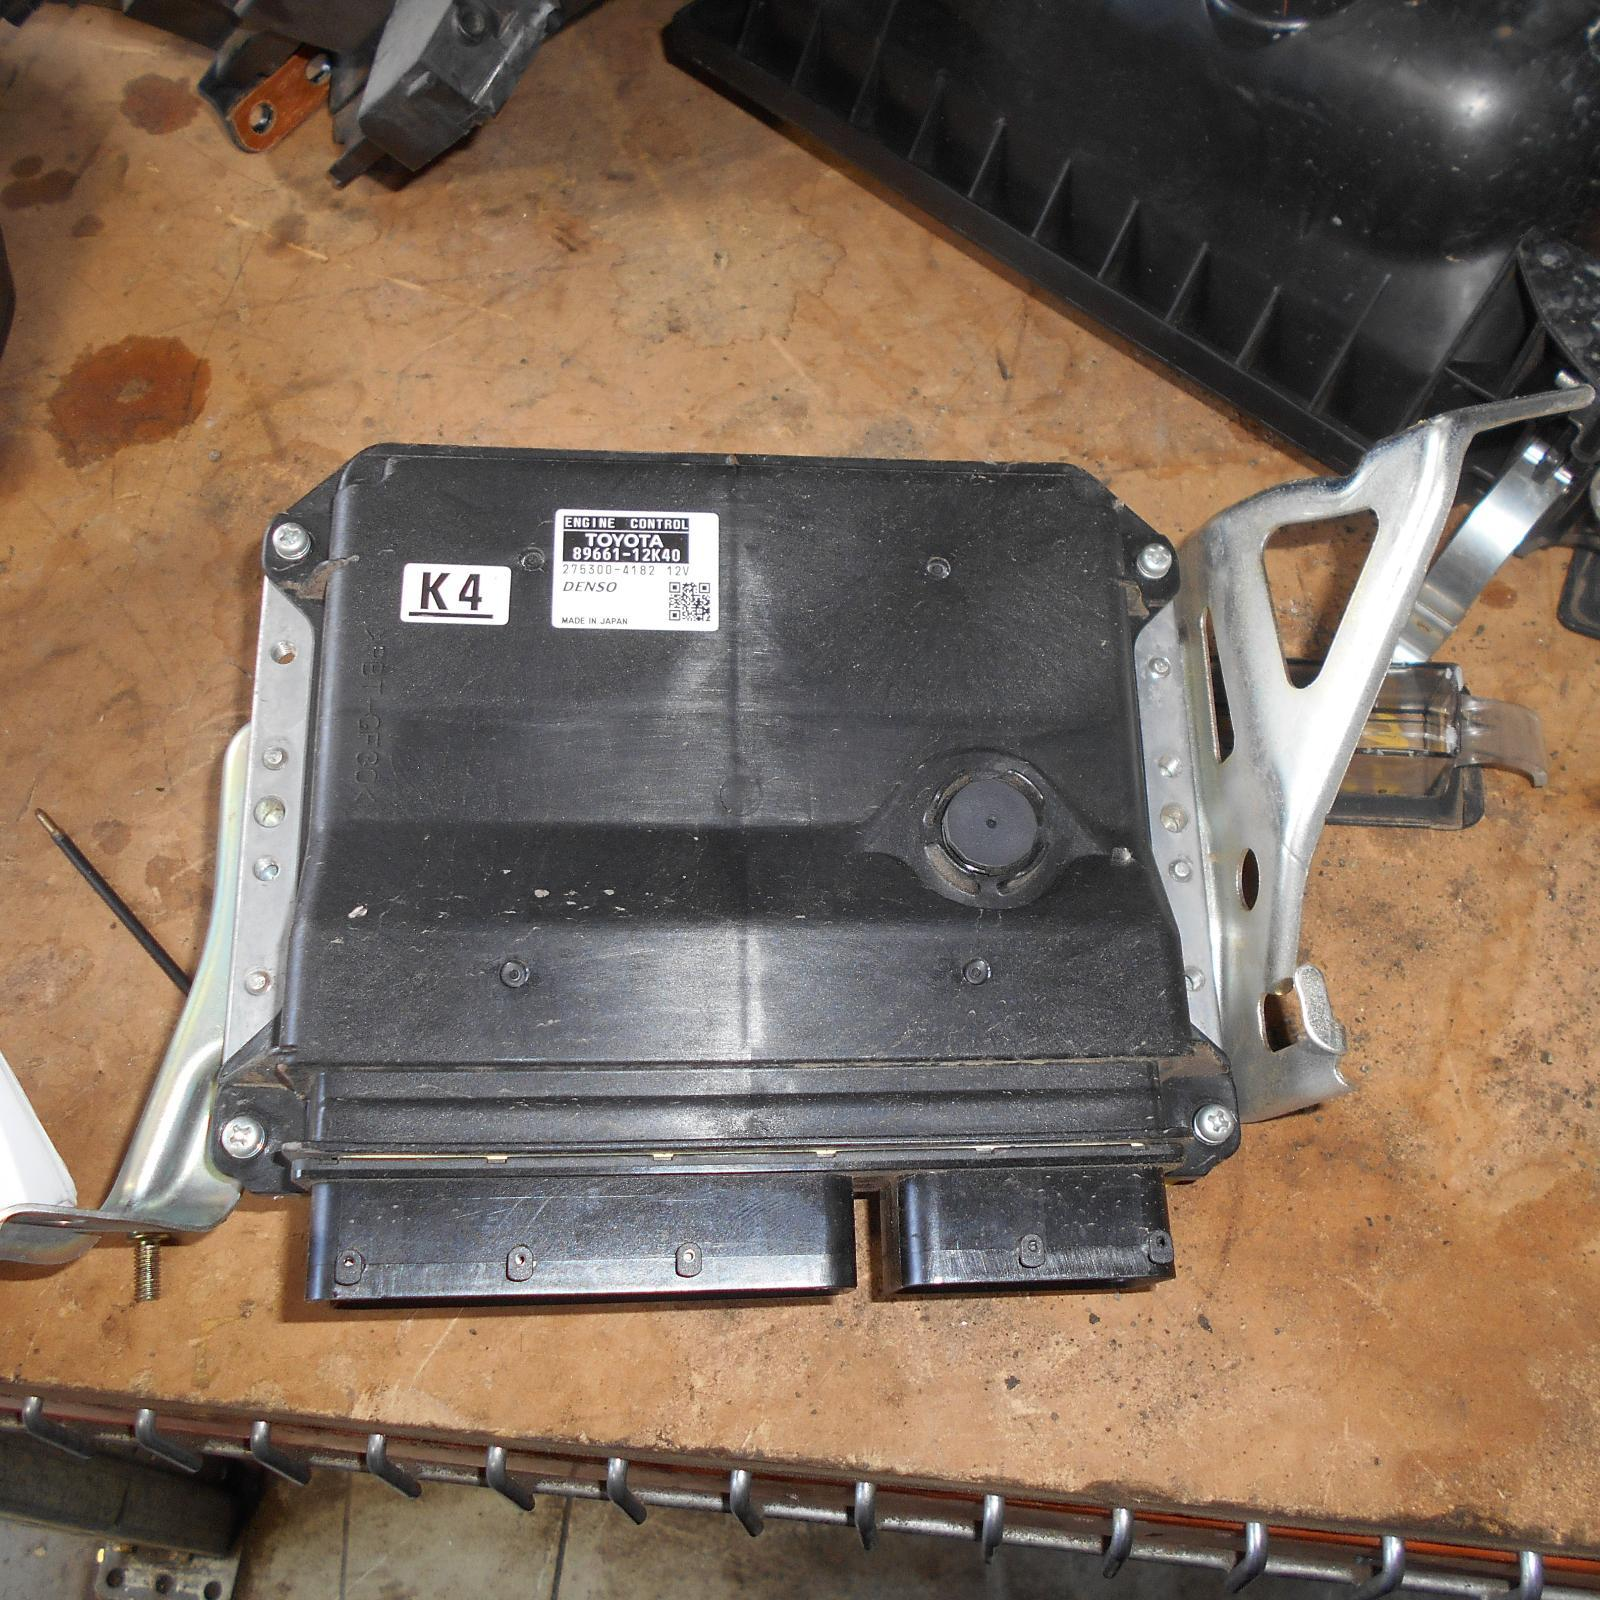 TOYOTA COROLLA, Ecu, ENGINE ECU, AUTO T/M TYPE, 89661-12K40, SEC SET (ECU/IMM/READER/KEY), ZRE152/153R, 03/07-10/13